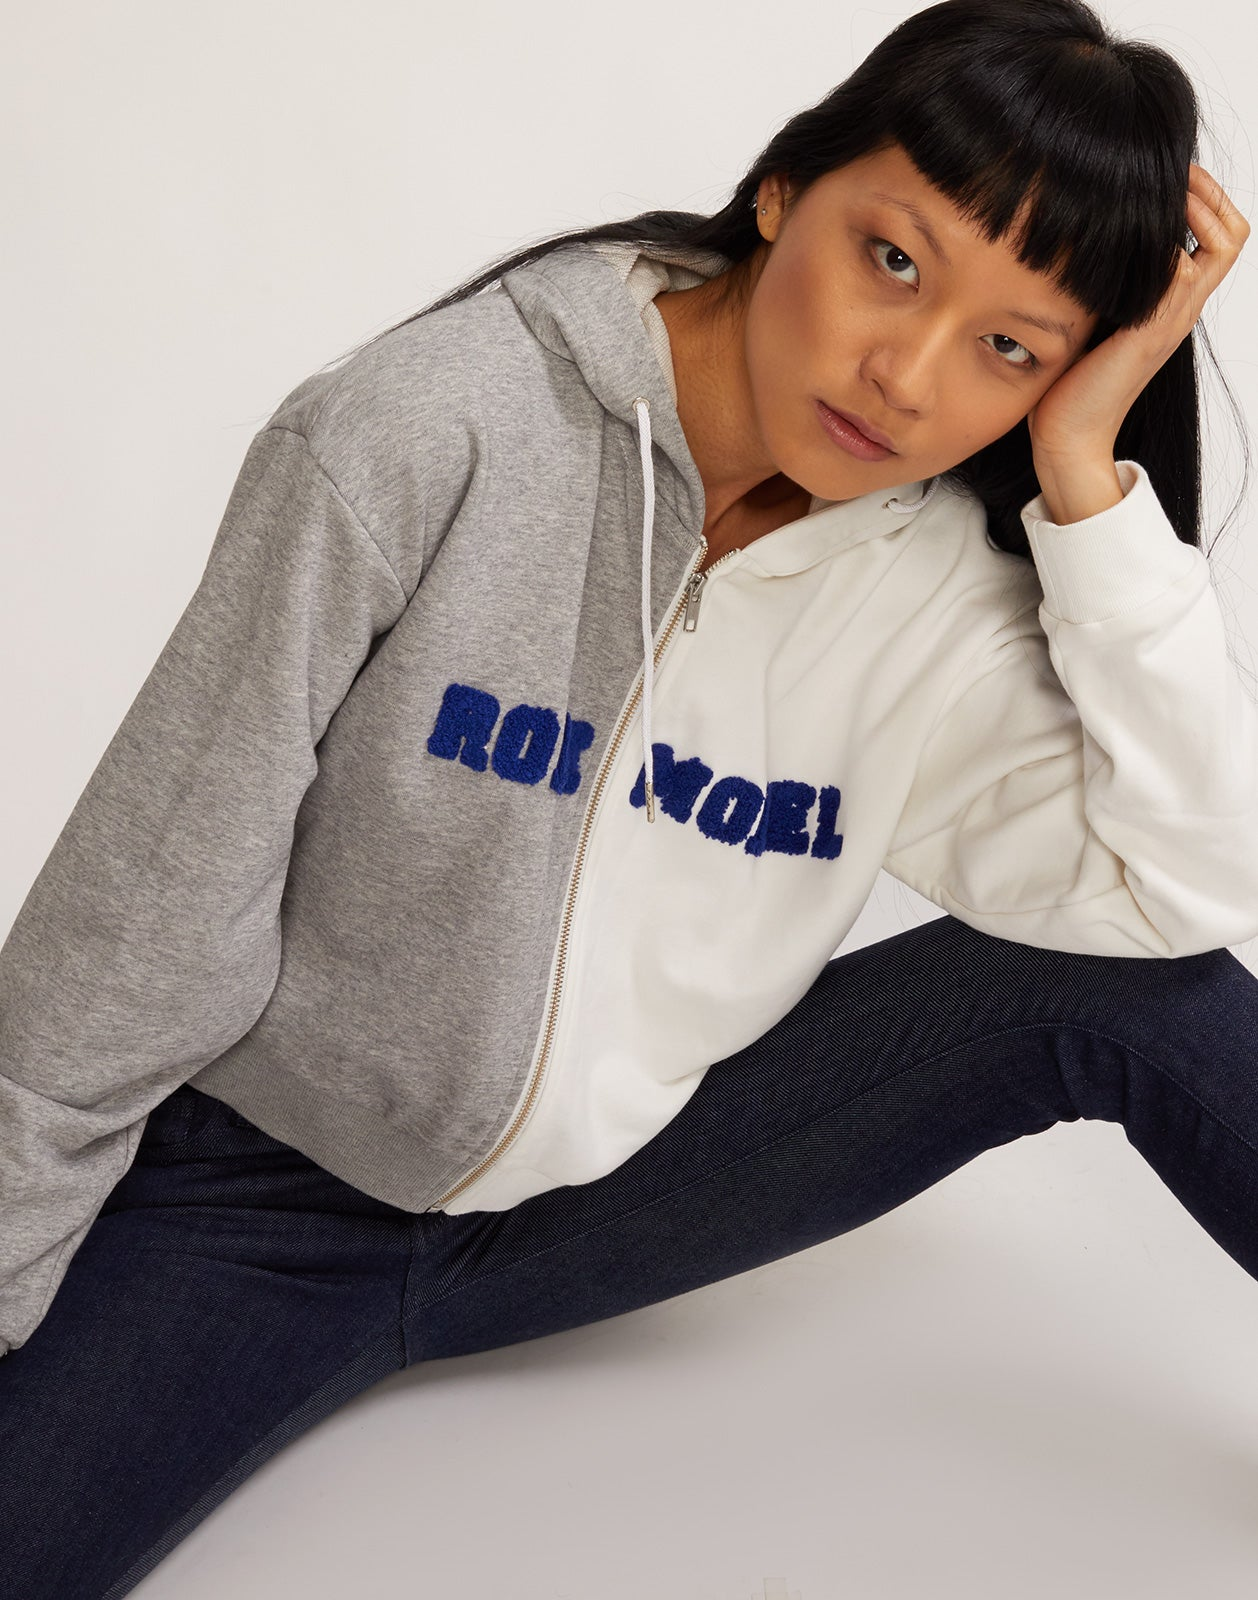 Role Model Embroidered Hoodie Sweatshirt alt view